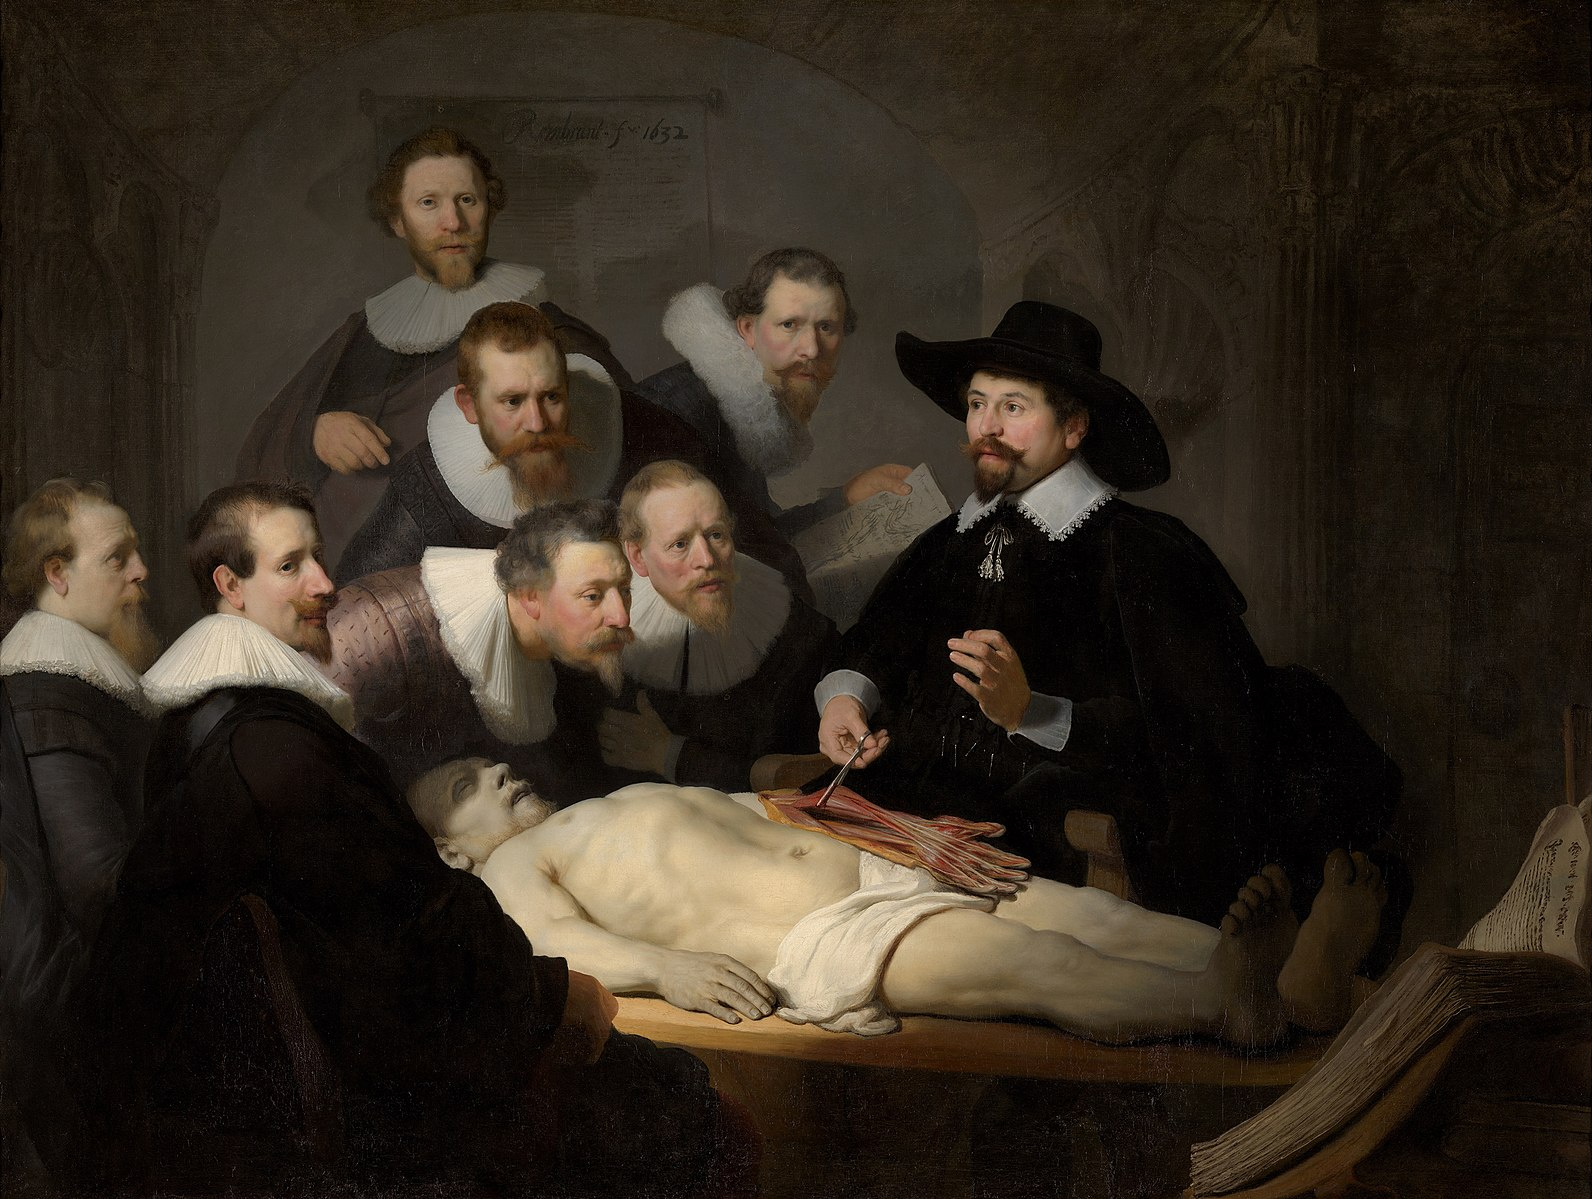 Rembrandt. The Anatomy Lesson of Dr. Nicolaes Tulp.